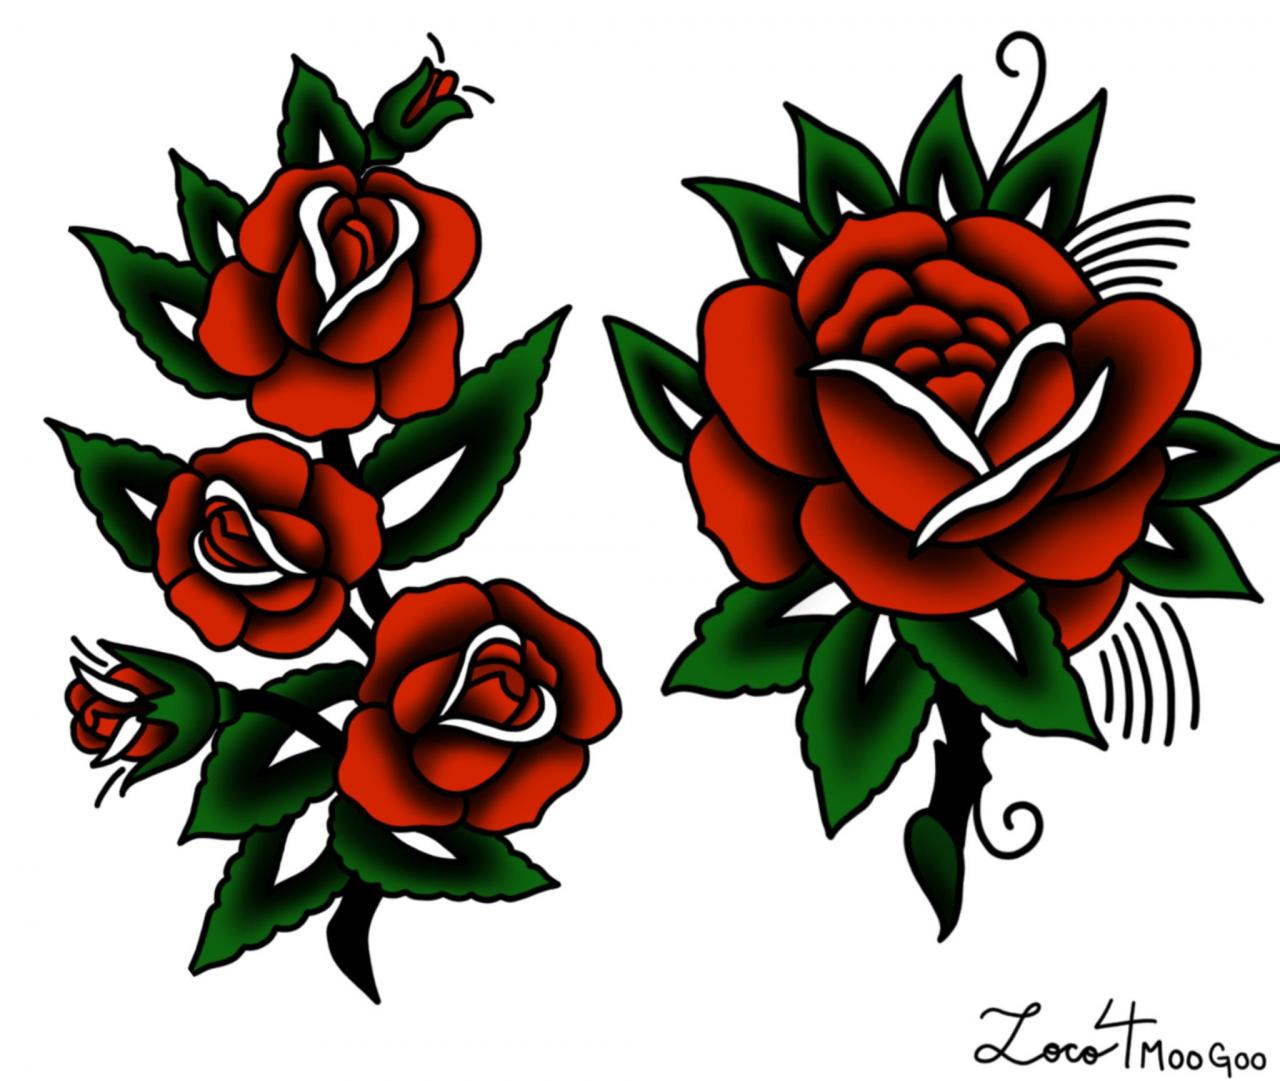 Made some Bert Grimm inspired roses on Procreate today! Beginner artist, critiques welcome.